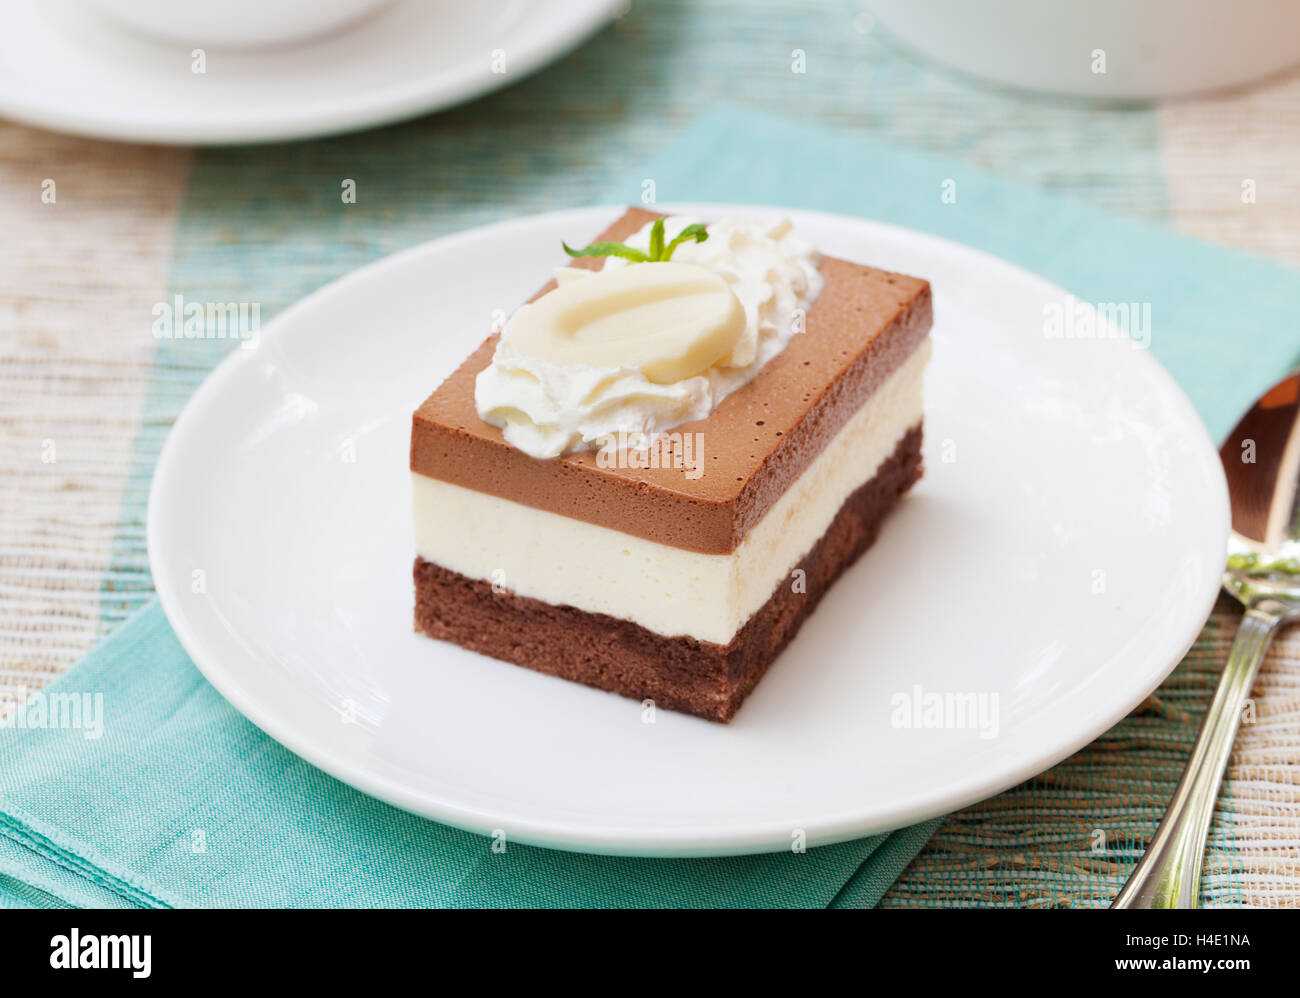 Three chocolate mousse cake on a white plate - Stock Image